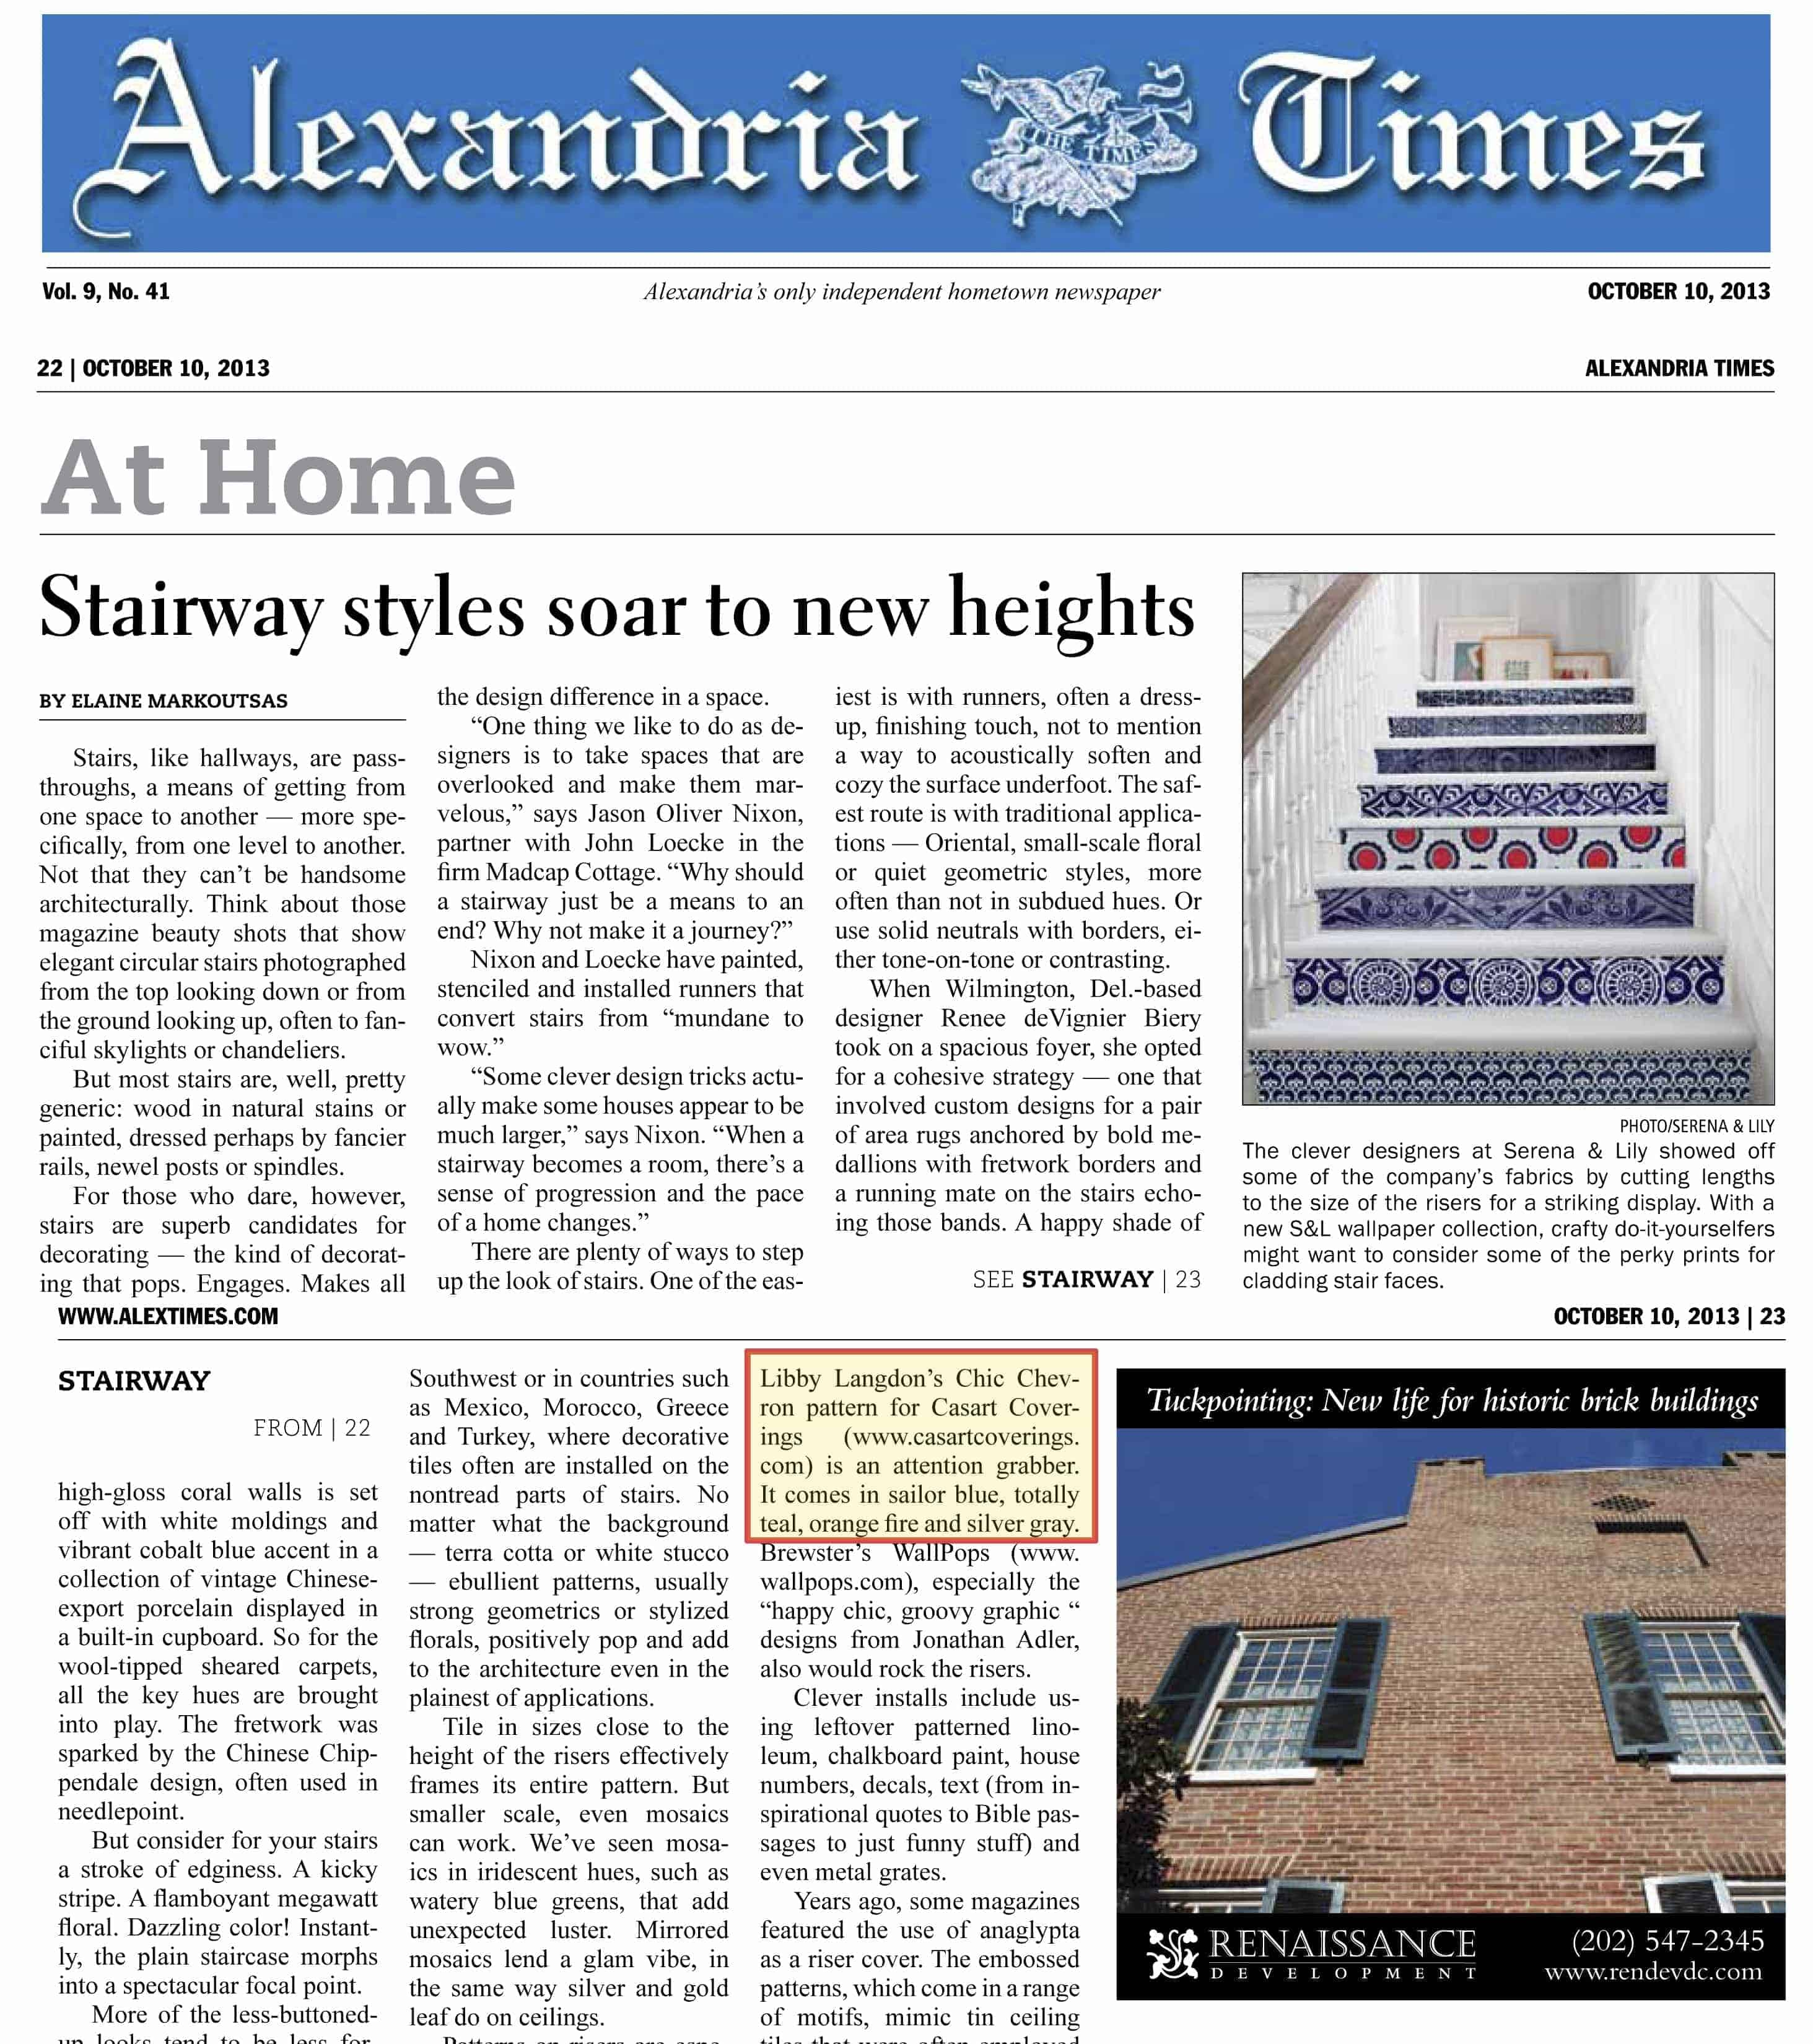 Casart coverings removable wallpaper featured in Alexandria Times